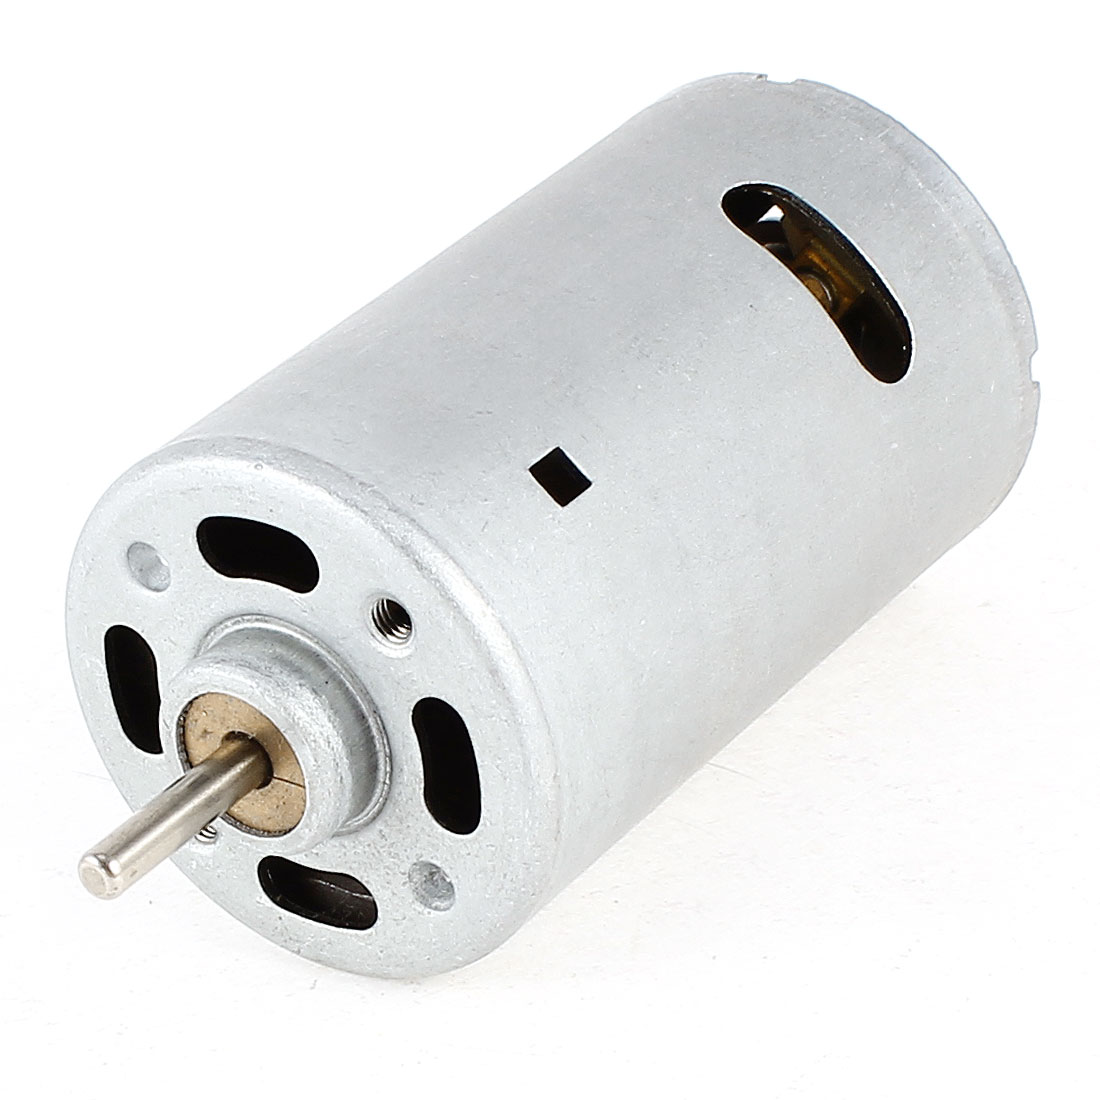 Silver Tone 6-12V 8000-13000RPM Axle High Speed DC Motor for Toy Robot